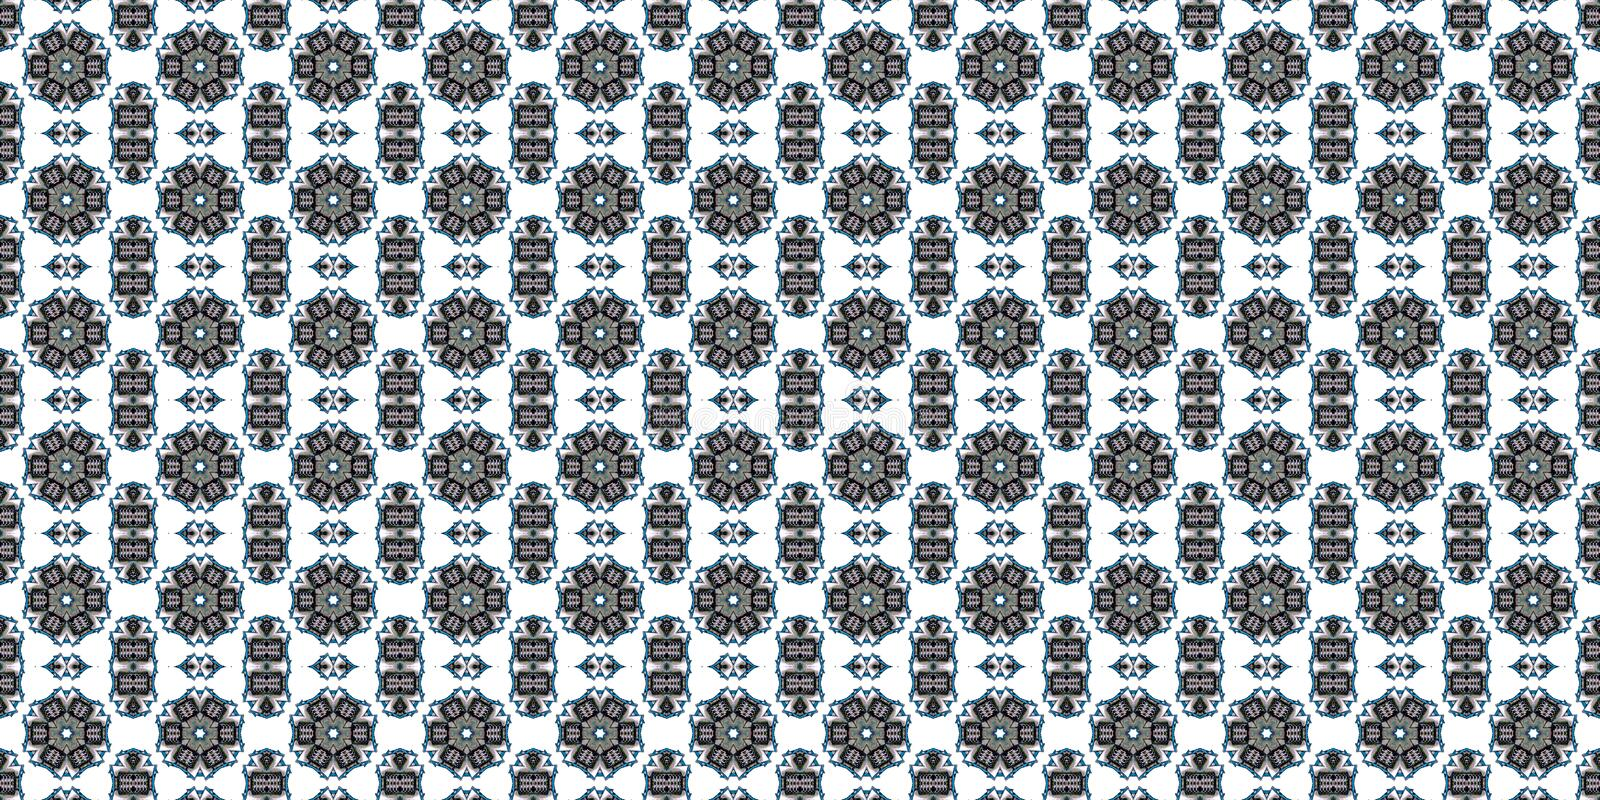 Abstract in dark shadows, paisley ornament. Seamless pattern or textures. Kaleidoscopic orient popular style royalty free stock photography